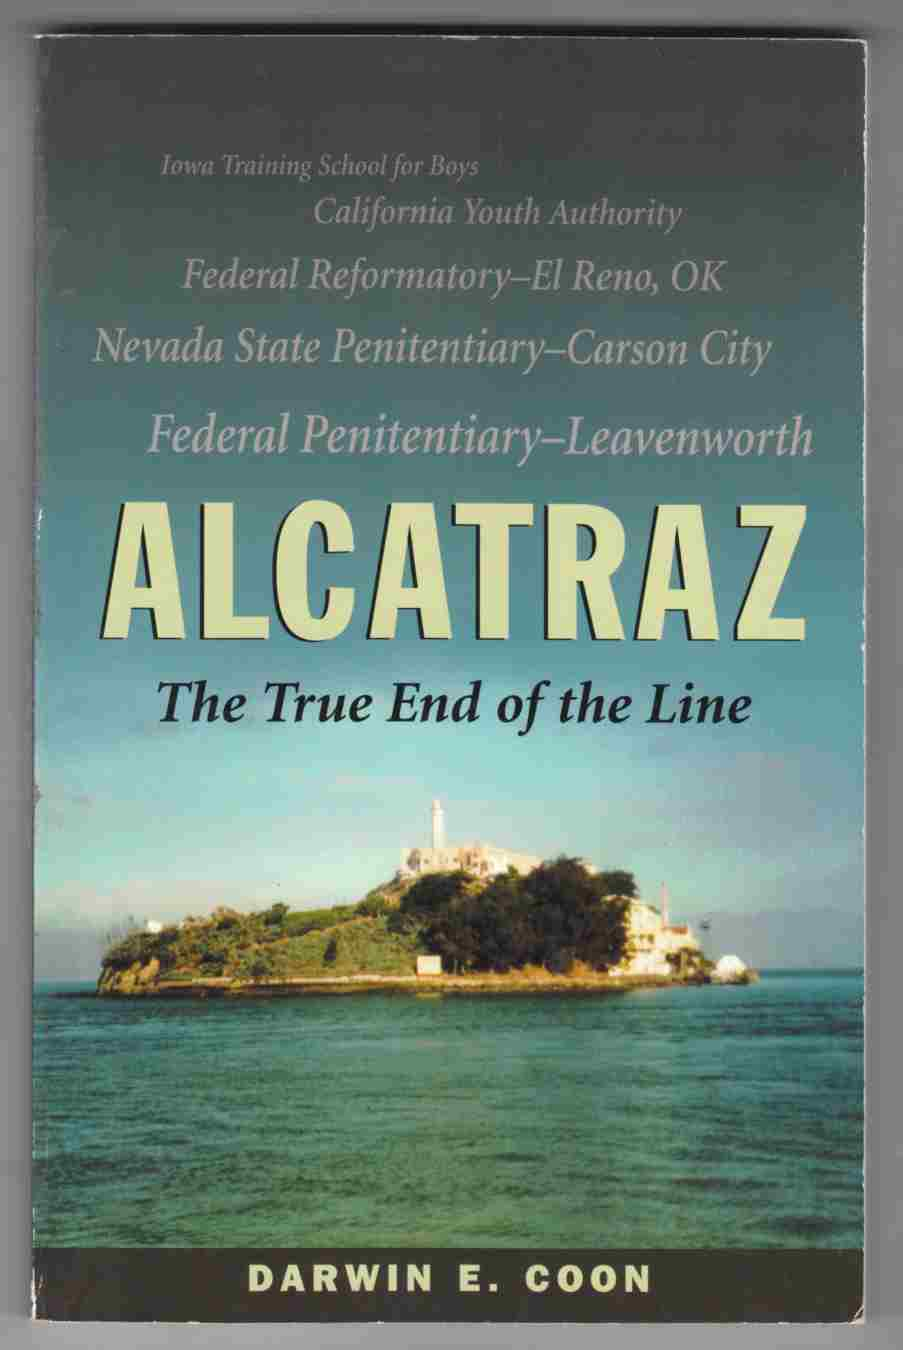 Image for Alcatraz The True End of the Line